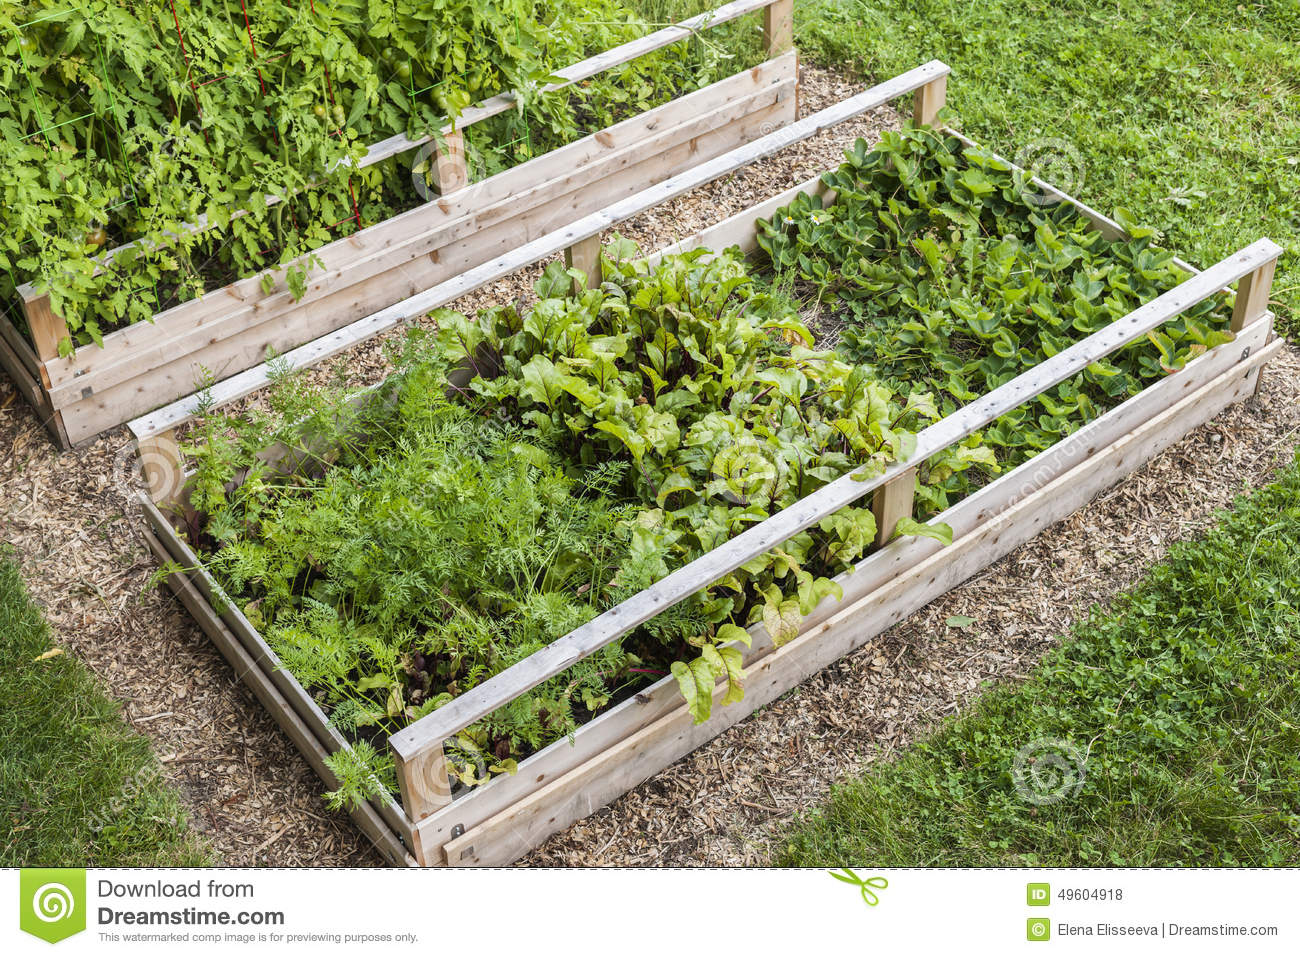 Raised vegetable gardens - Vegetable Garden In Raised Boxes Royalty Free Stock Photos